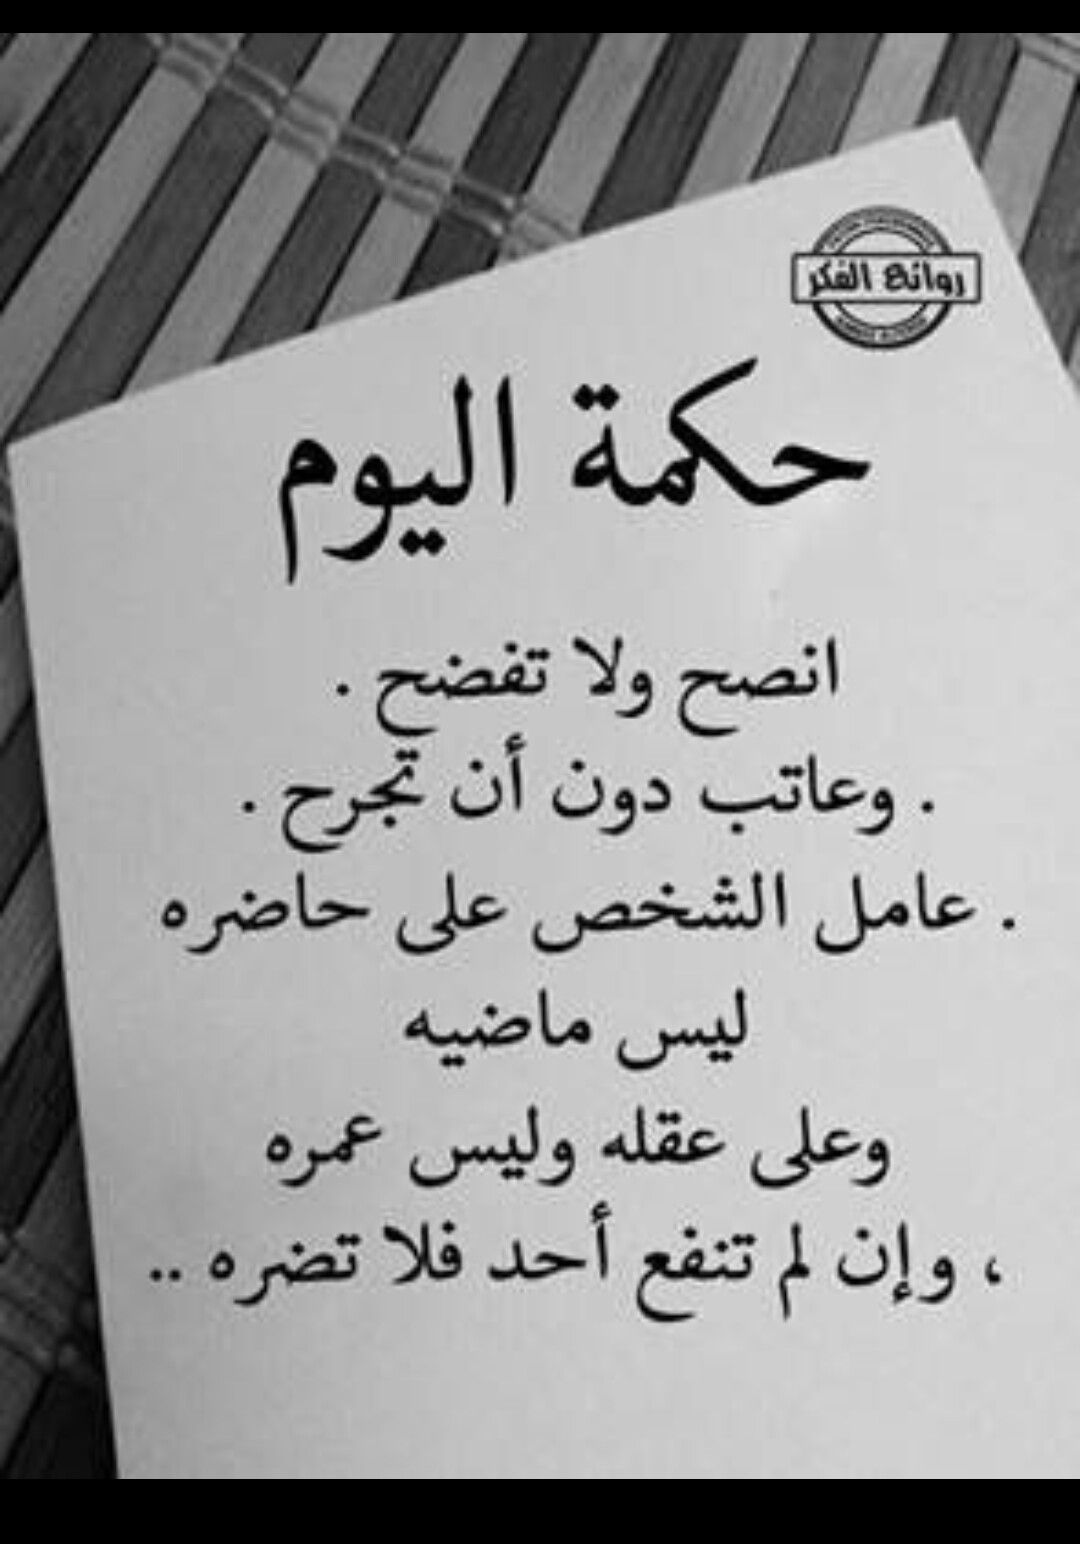 Pin By Mohamed Eissa On عضات Wisdom Quotes Life Words Quotes Wisdom Quotes